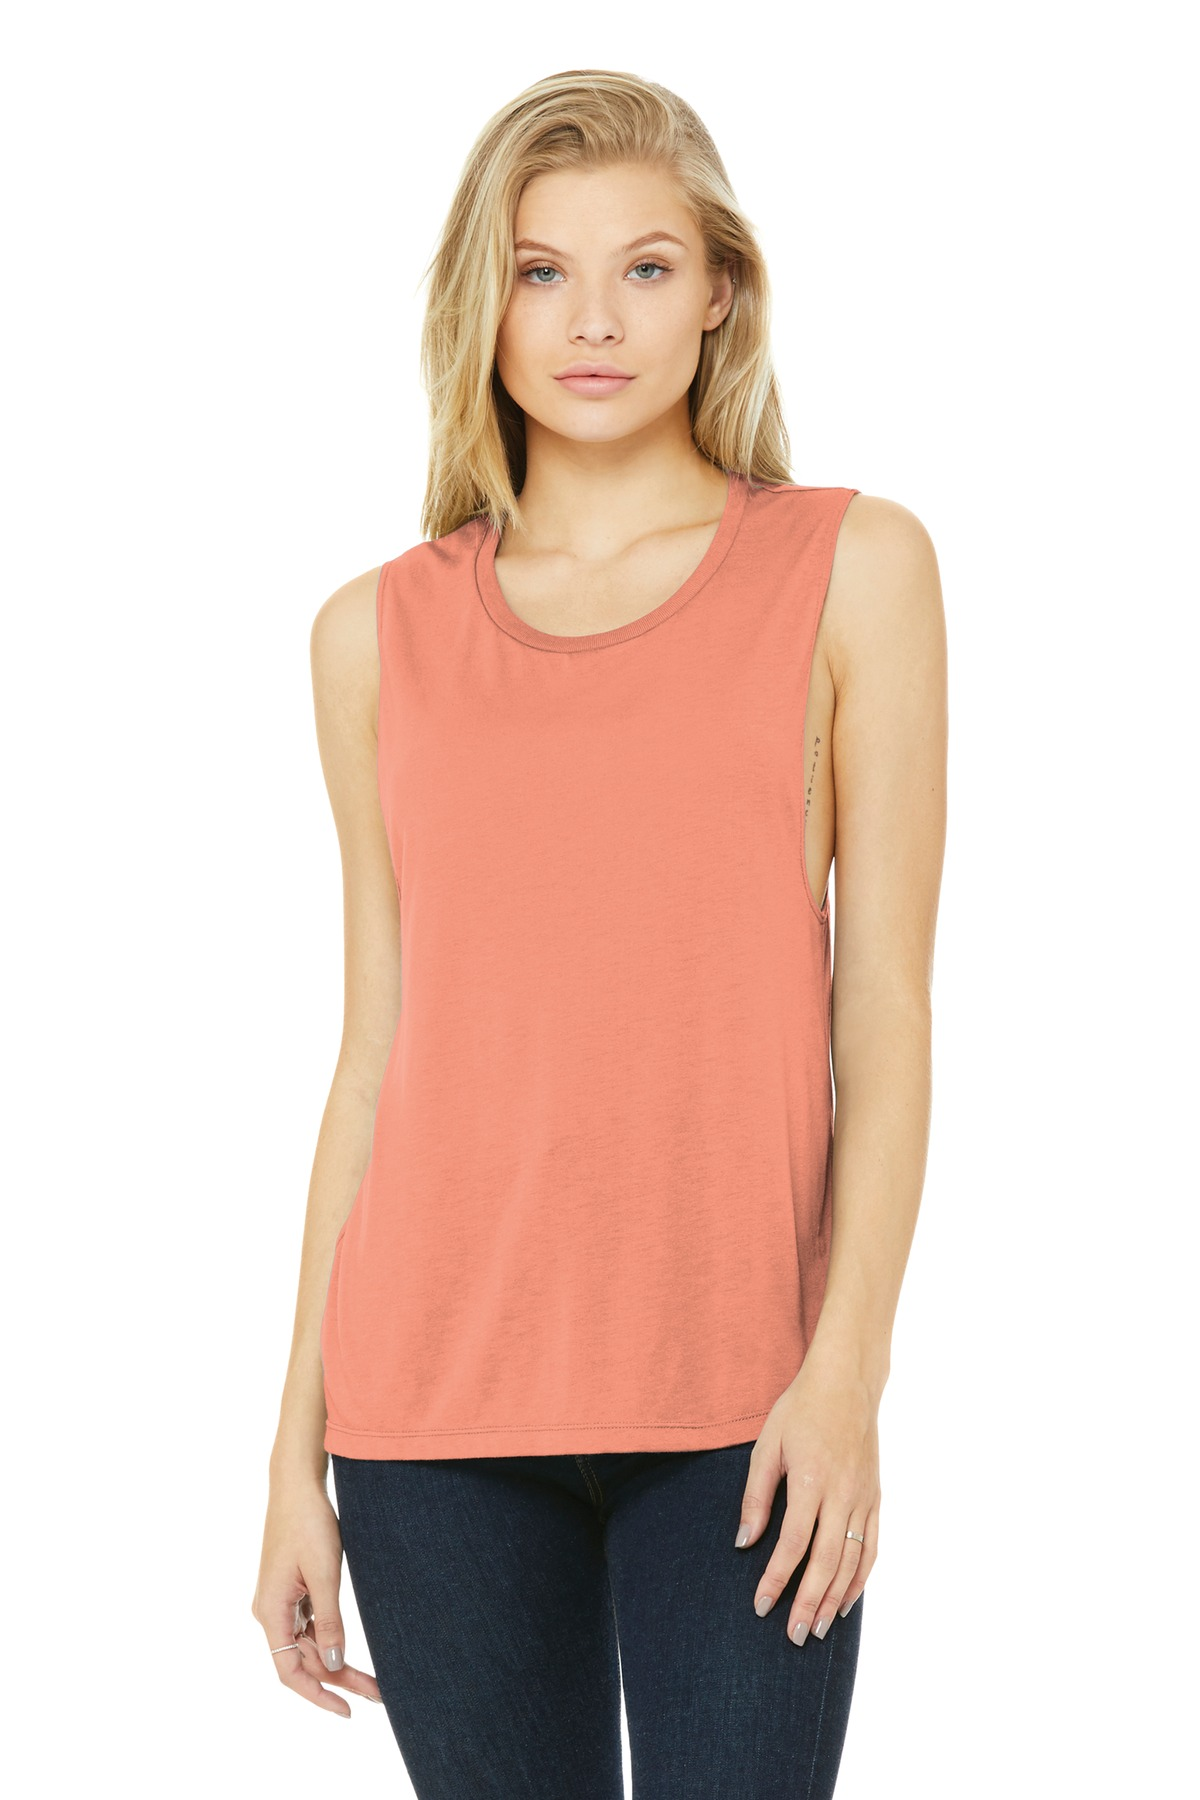 BELLA+CANVAS  ®  Women's Flowy Scoop Muscle Tank. BC8803 - Sunset